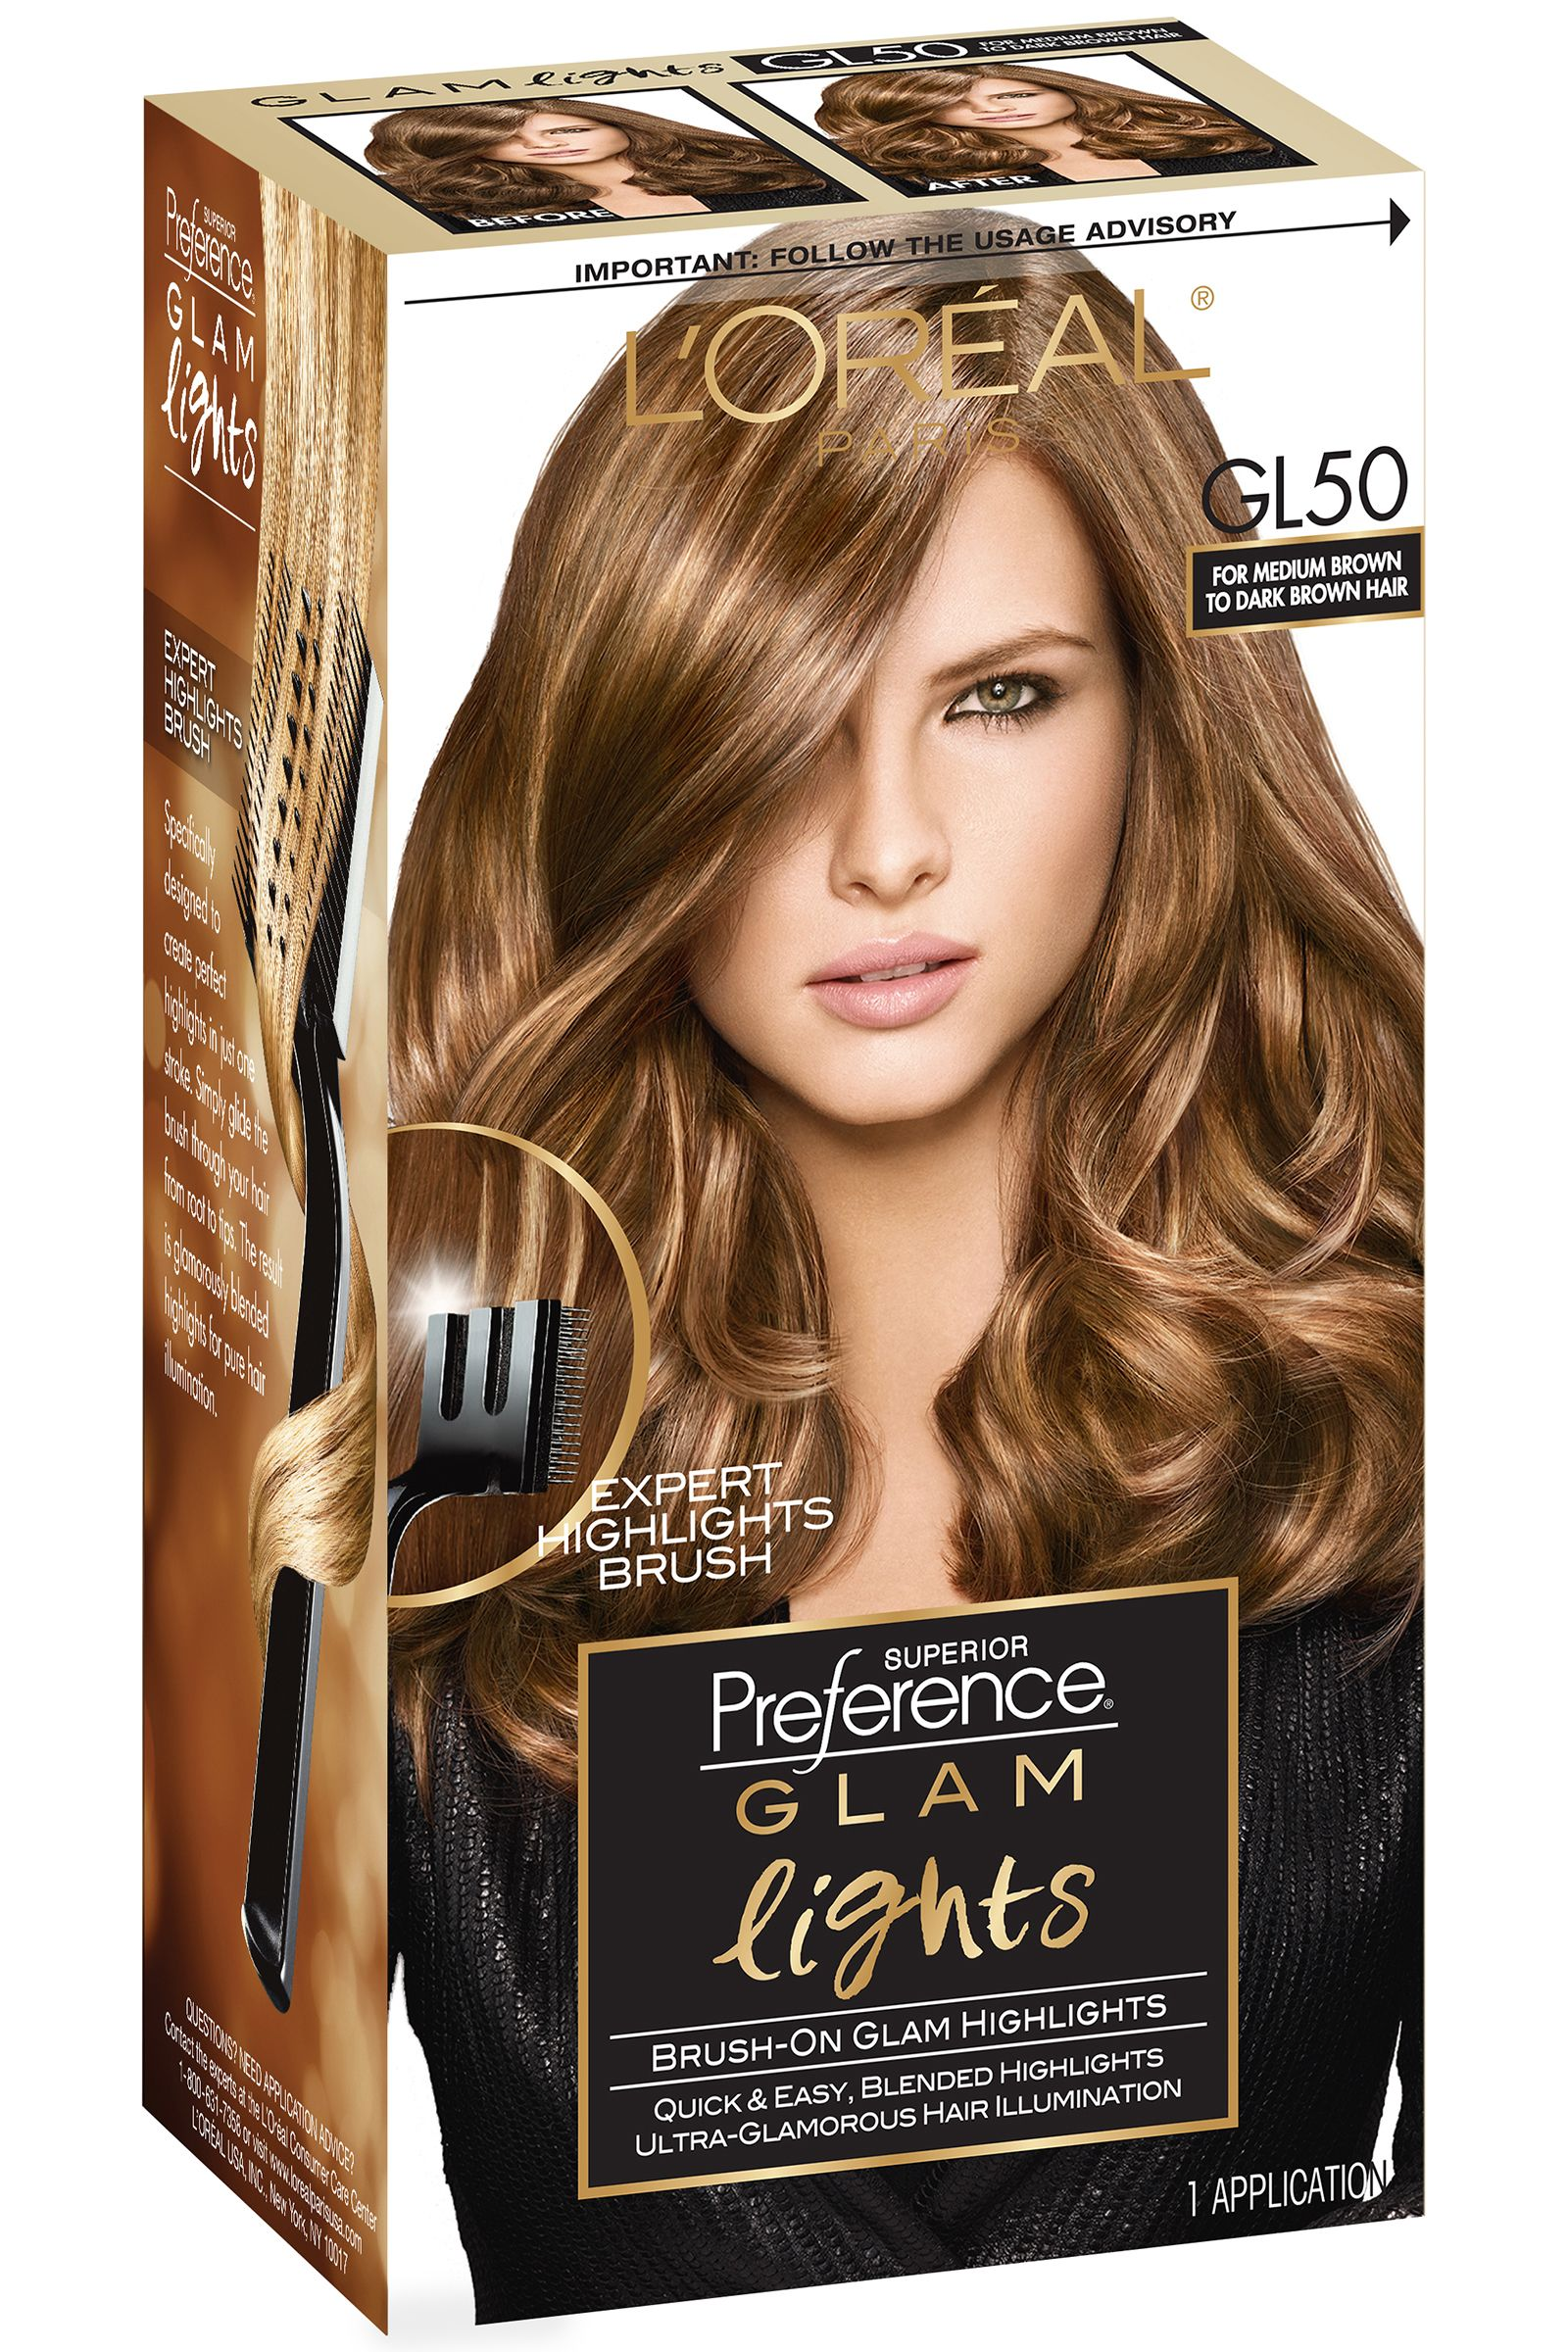 The Best At Home Hair Color That Will Hold Up And Look Great Hair